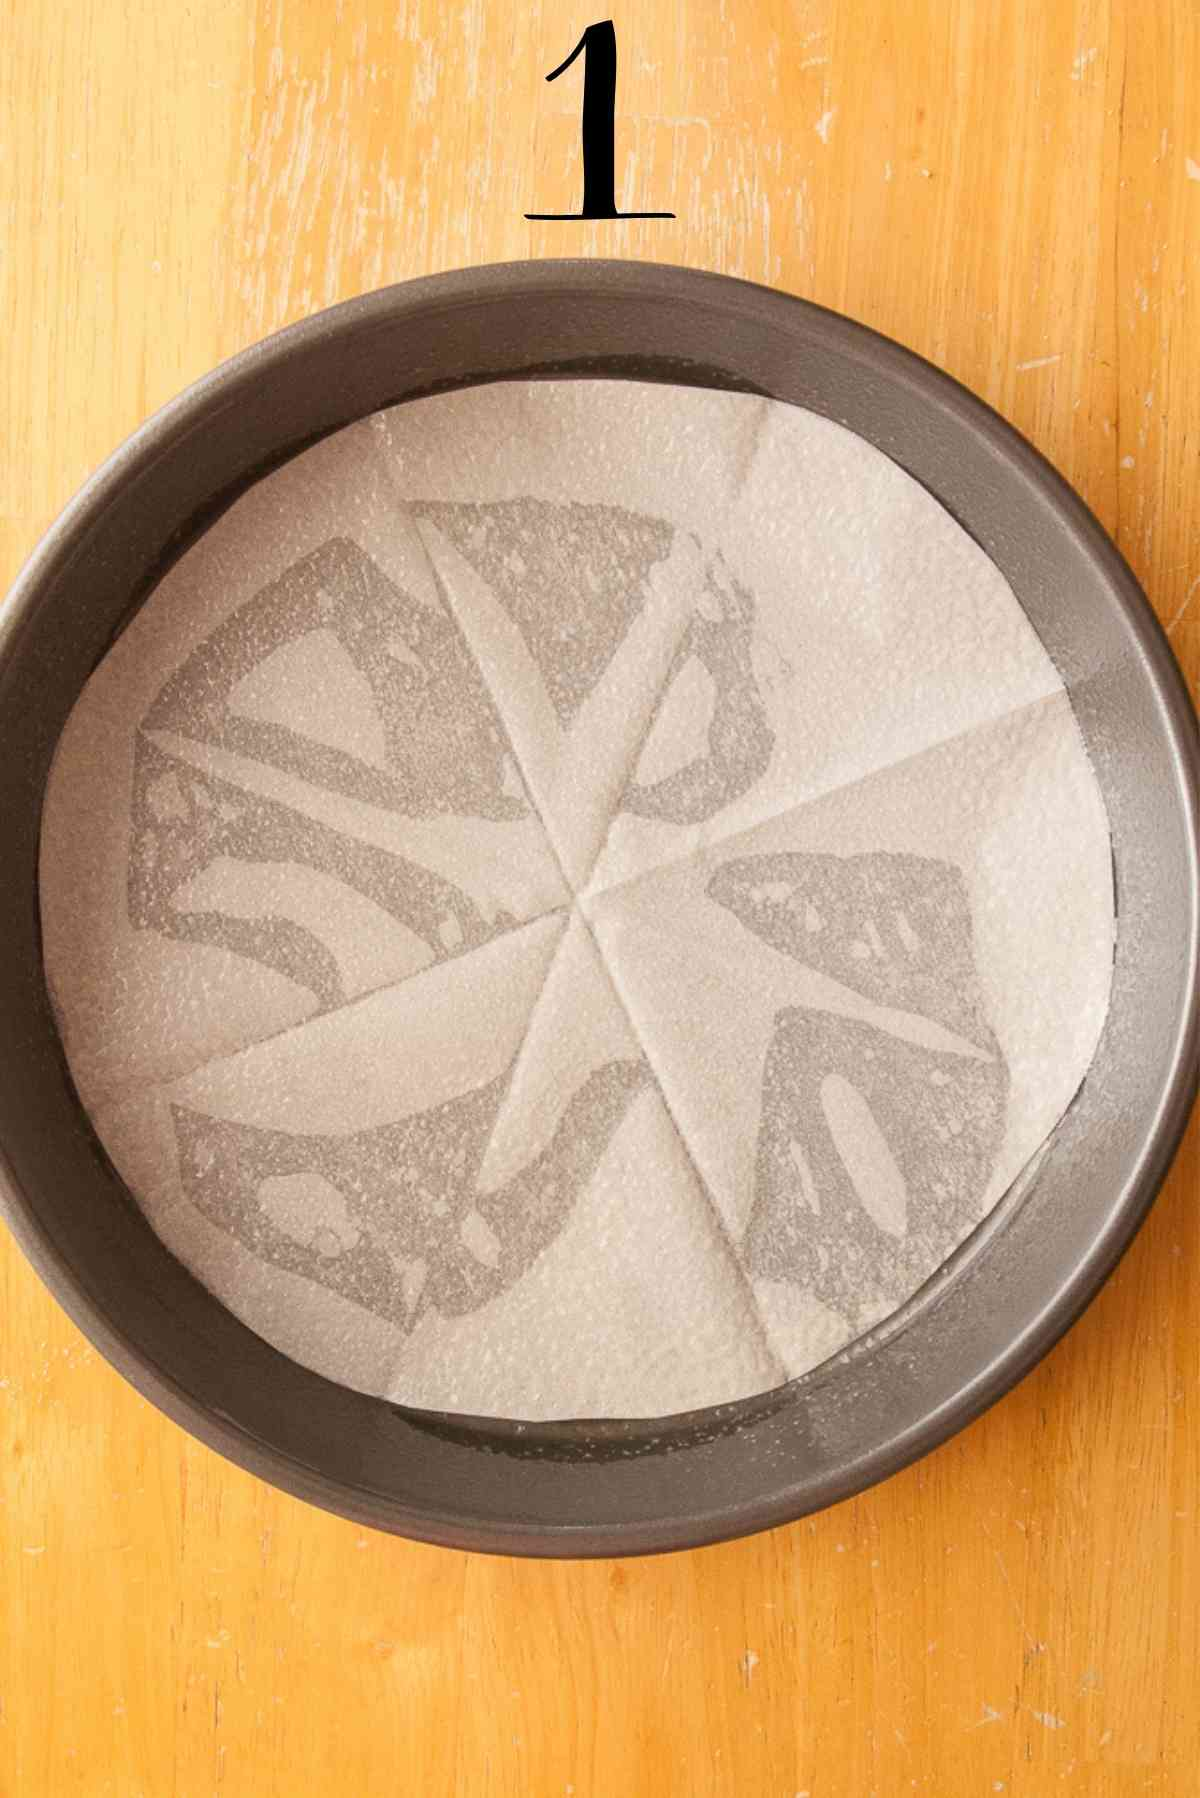 Preparation of the cake pan using a parchment paper circle.